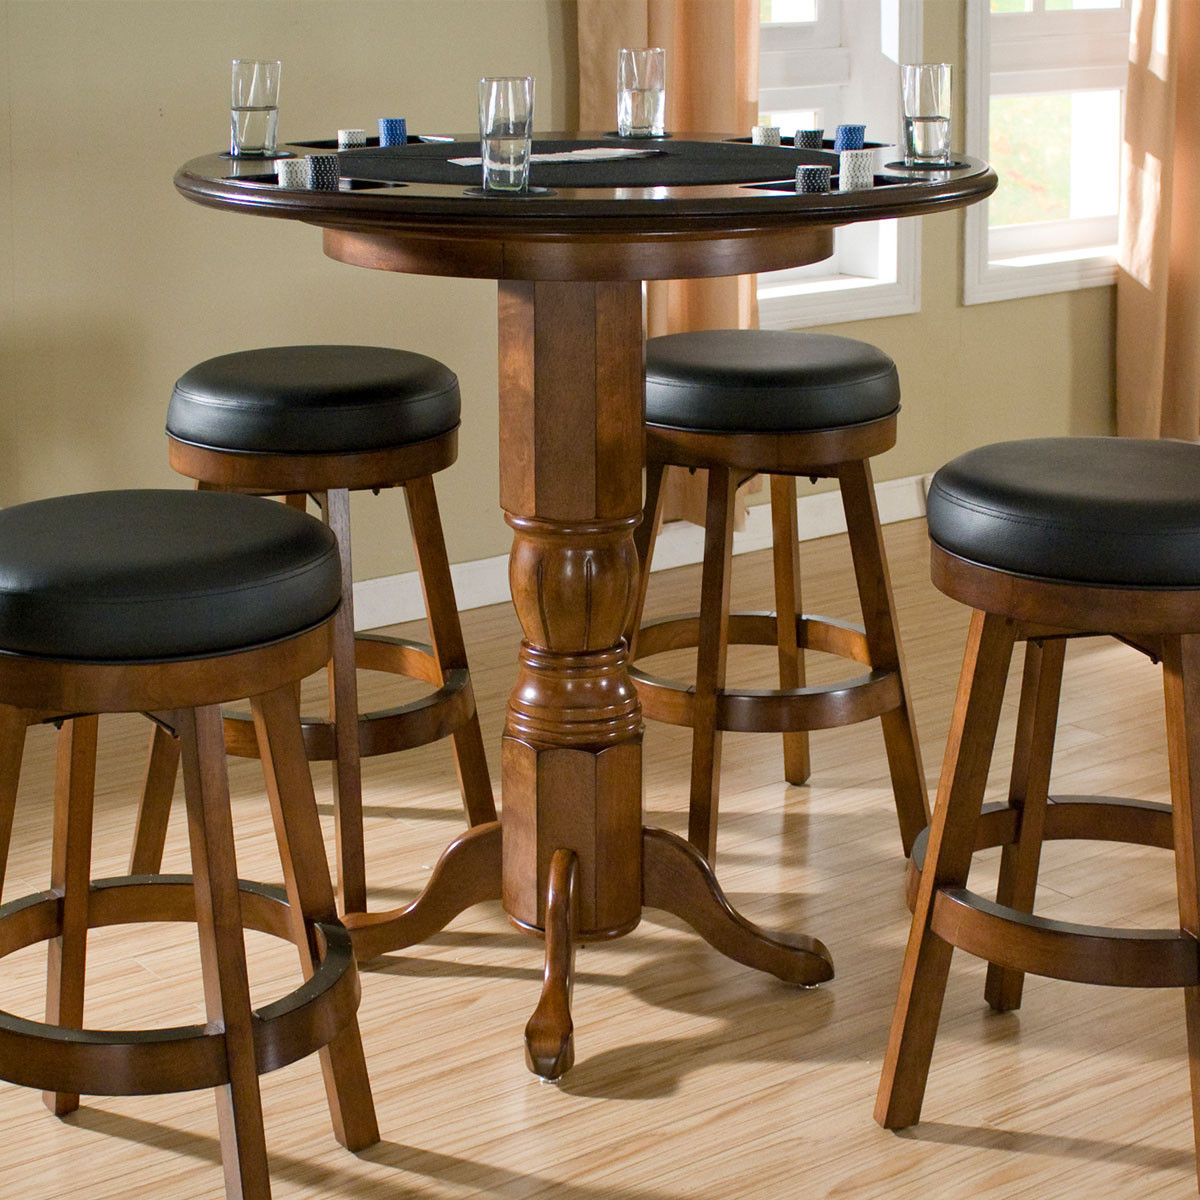 Best ideas about Game Room Tables . Save or Pin Shop Pub Tables line Aminis Now.